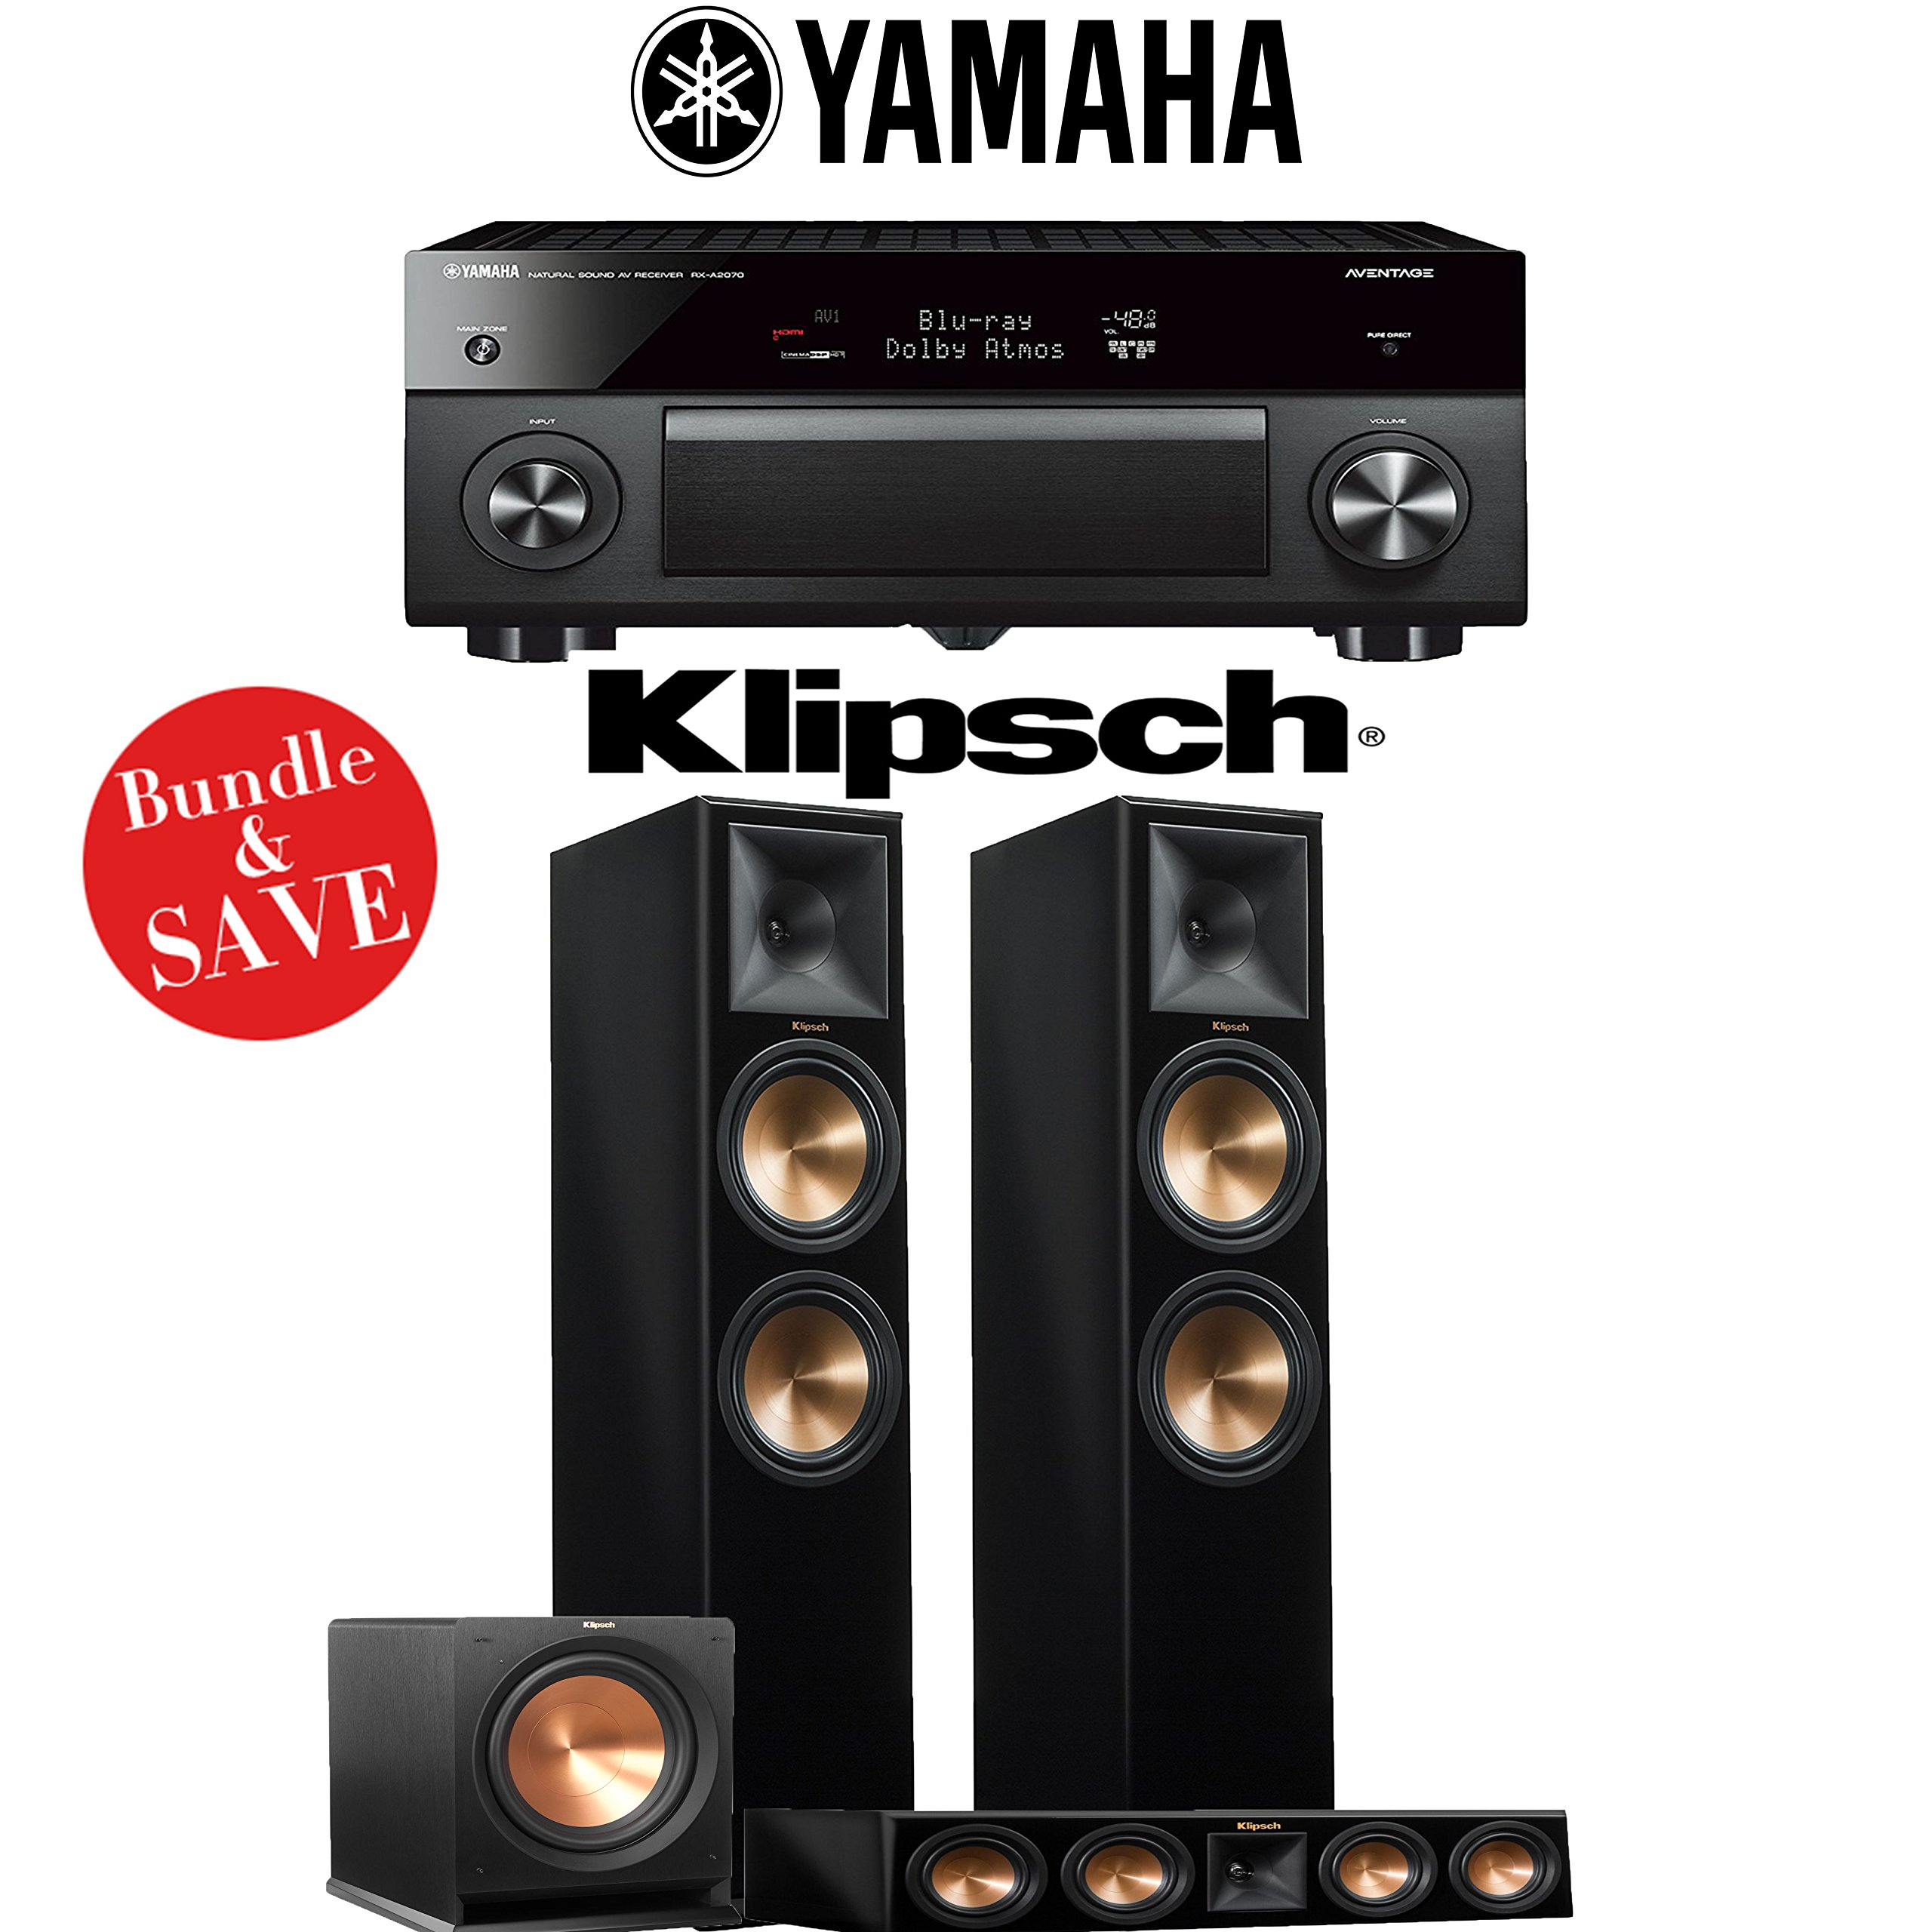 Yamaha AVENTAGE RX-A2070BL 9.2-Ch 4K Network AV Receiver + Klipsch RP-280F + Klipsch RP-440C + Klipsch R-112SW - 3.1-Ch Home Theater Package (Piano Black) by Yamaha